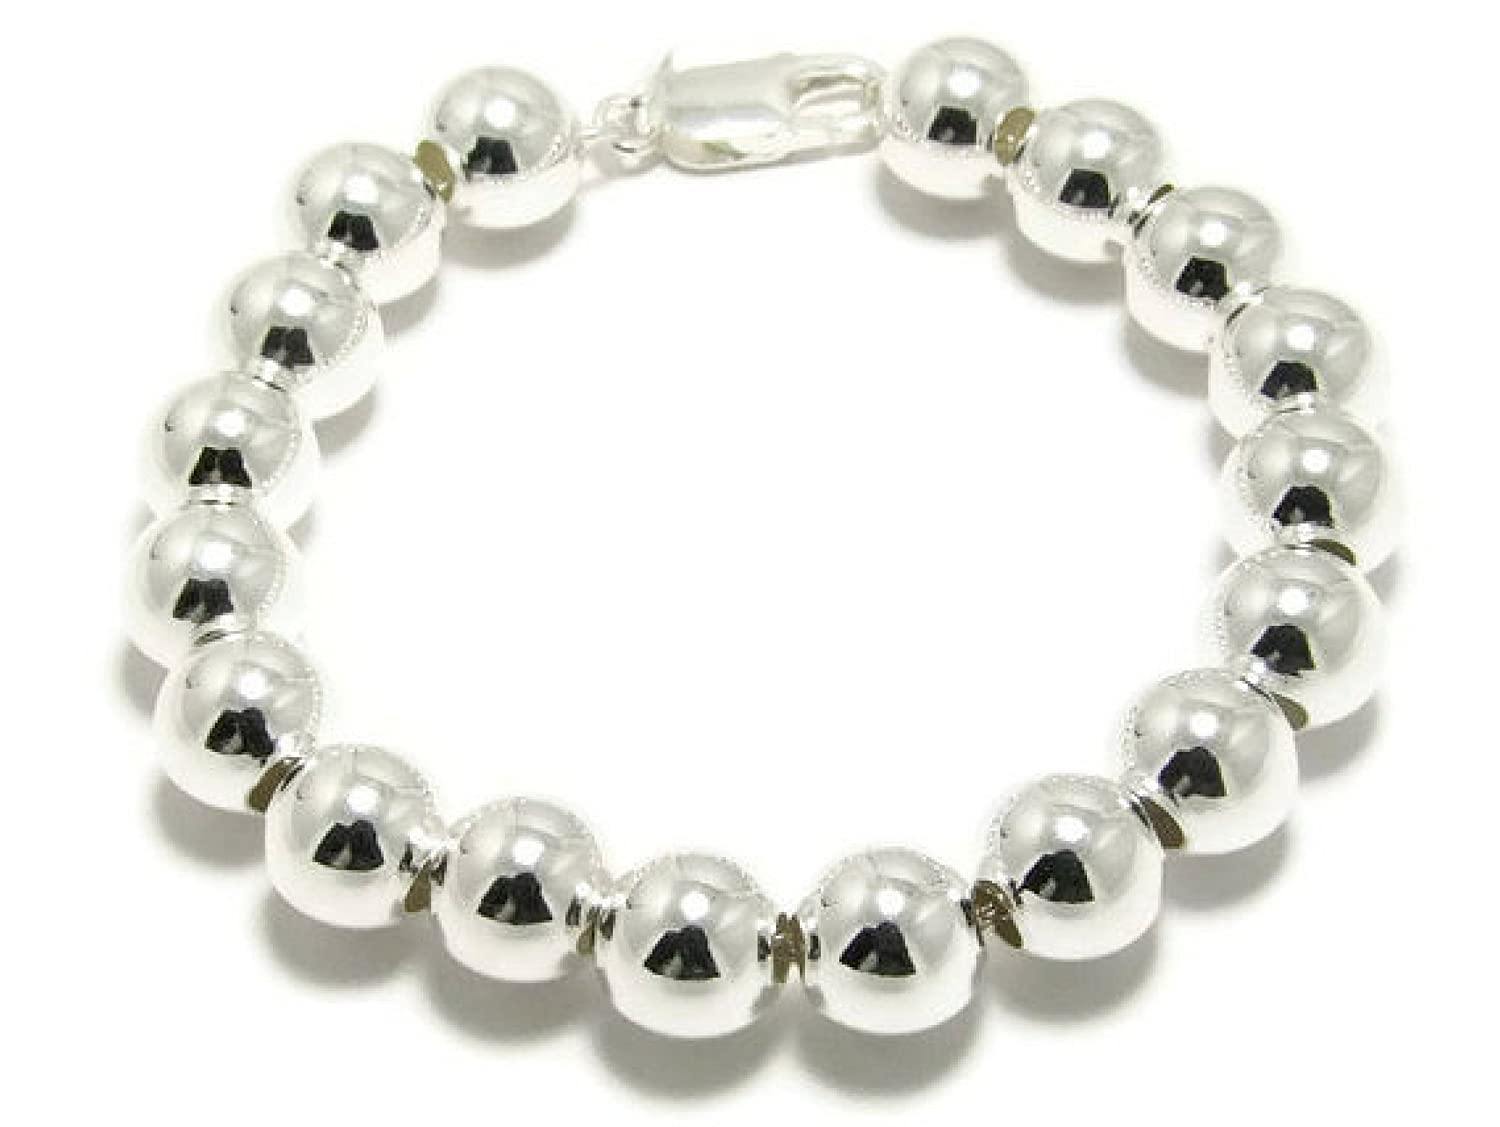 10mm Silver Ball Bracelet 925 Sterling silver ball bead bracelet 10mm silver beaded bracelet big silver ball beads bracelet Sterling Bead